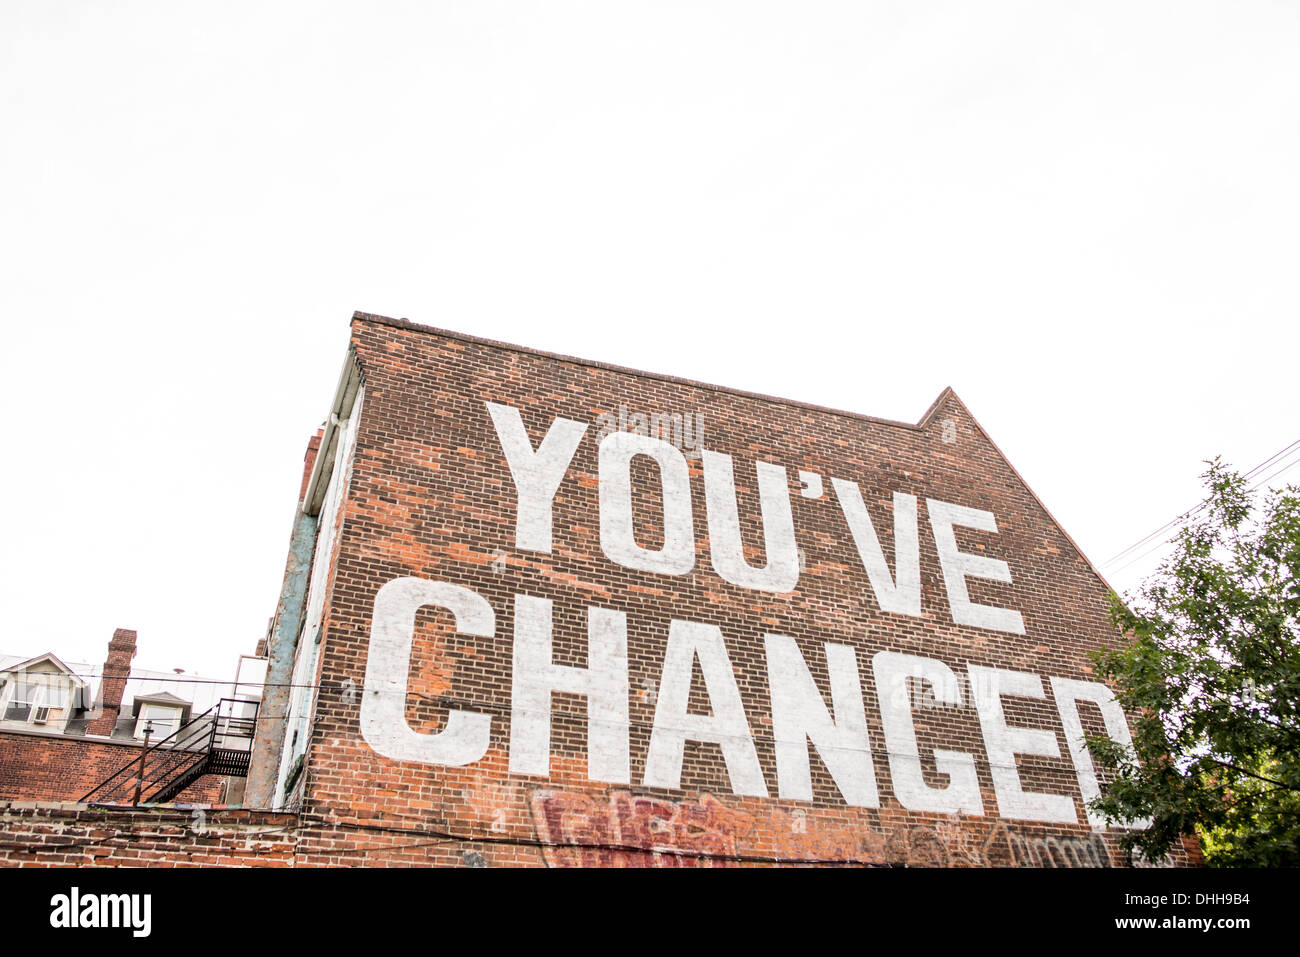 'You've changed' written on side of house - Stock Image